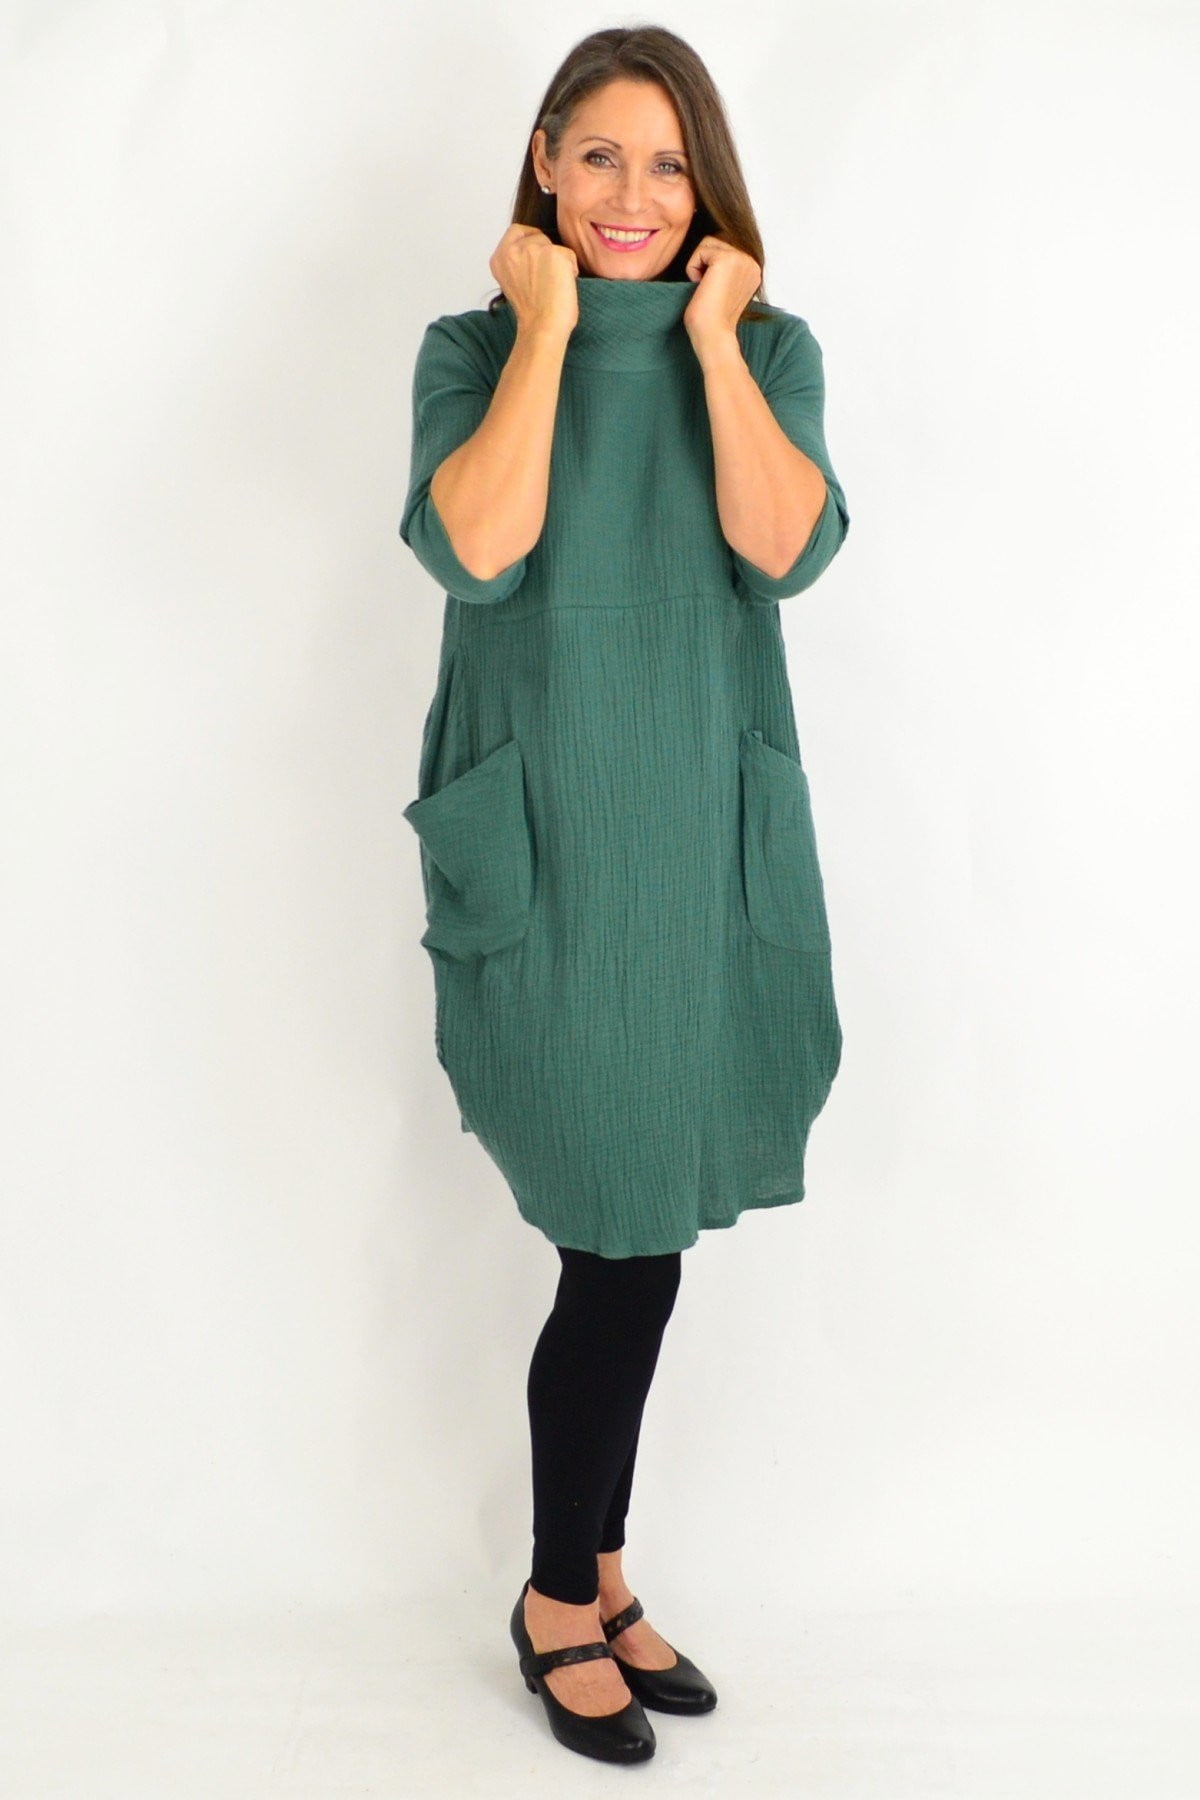 Teal Green Cotton Tunic Top | I Love Tunics | Tunic Tops | Tunic | Tunic Dresses  | womens clothing online